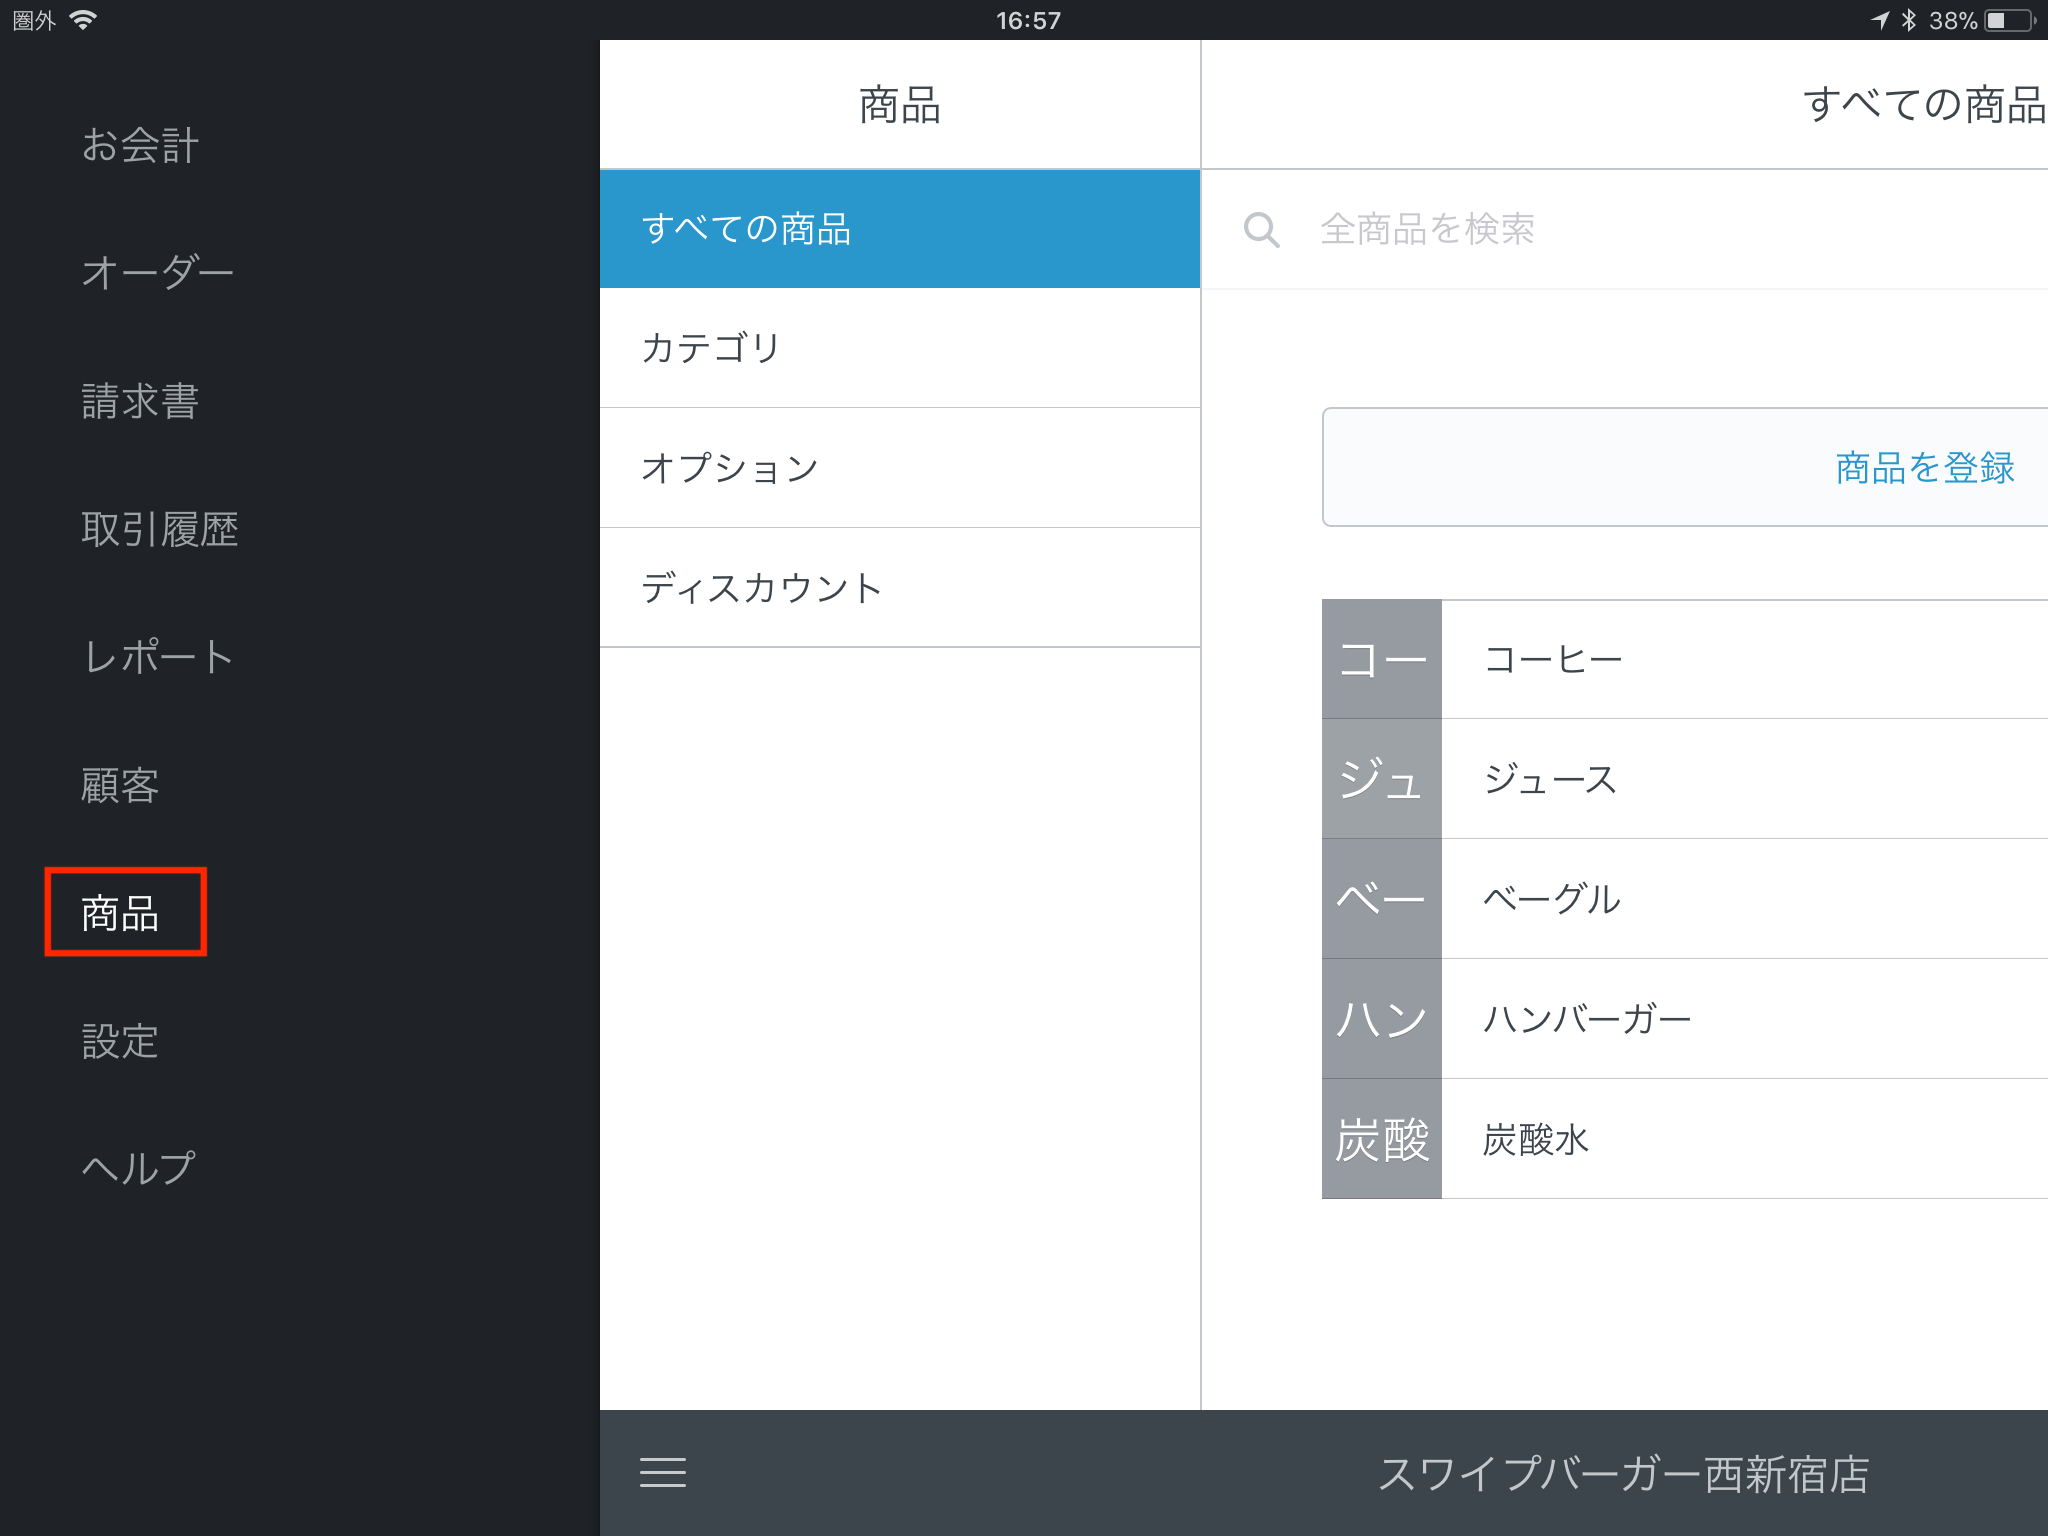 JP Only Edit Inventory in iPad_Tap Items